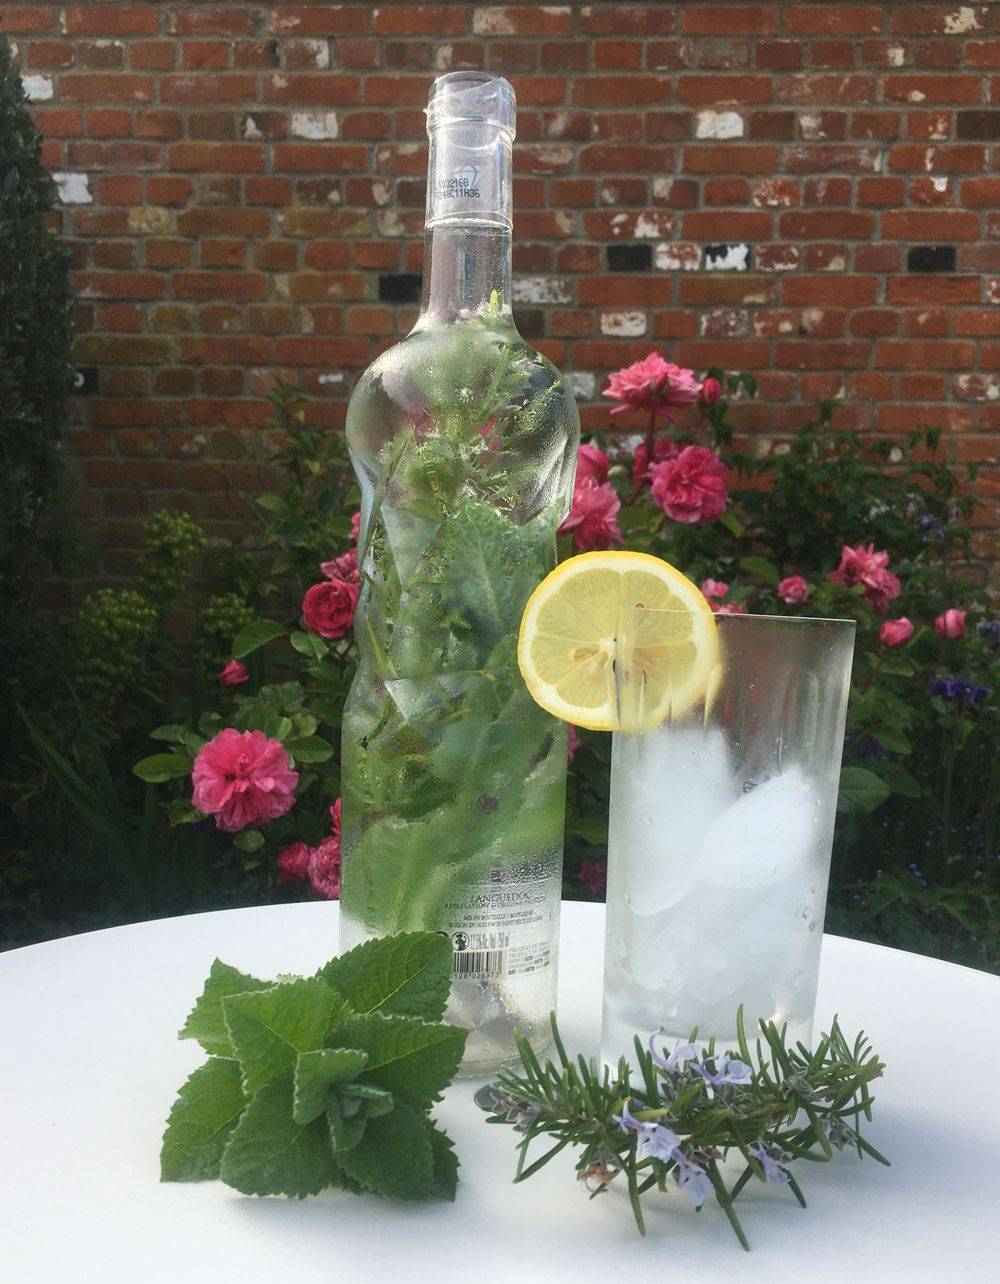 Rosemary & Mint Water - Good for the Mind